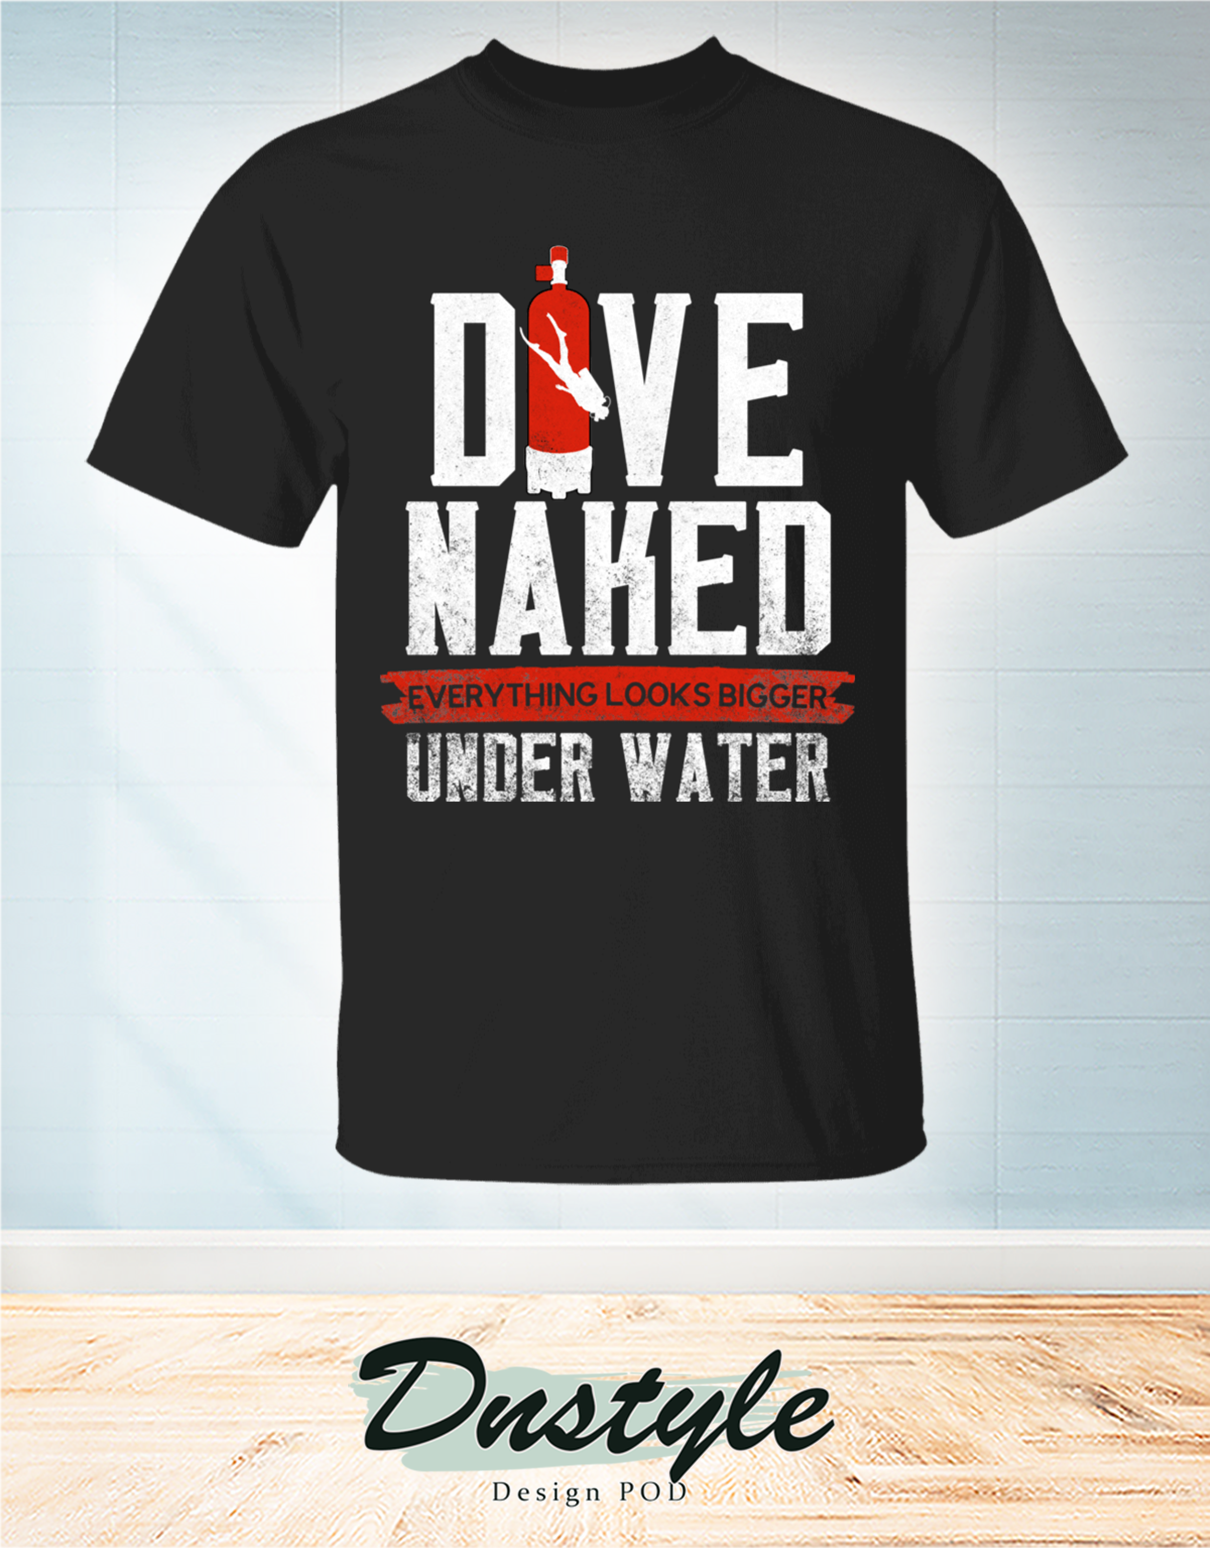 Dive naked everything look bigger under water t-shirt 3